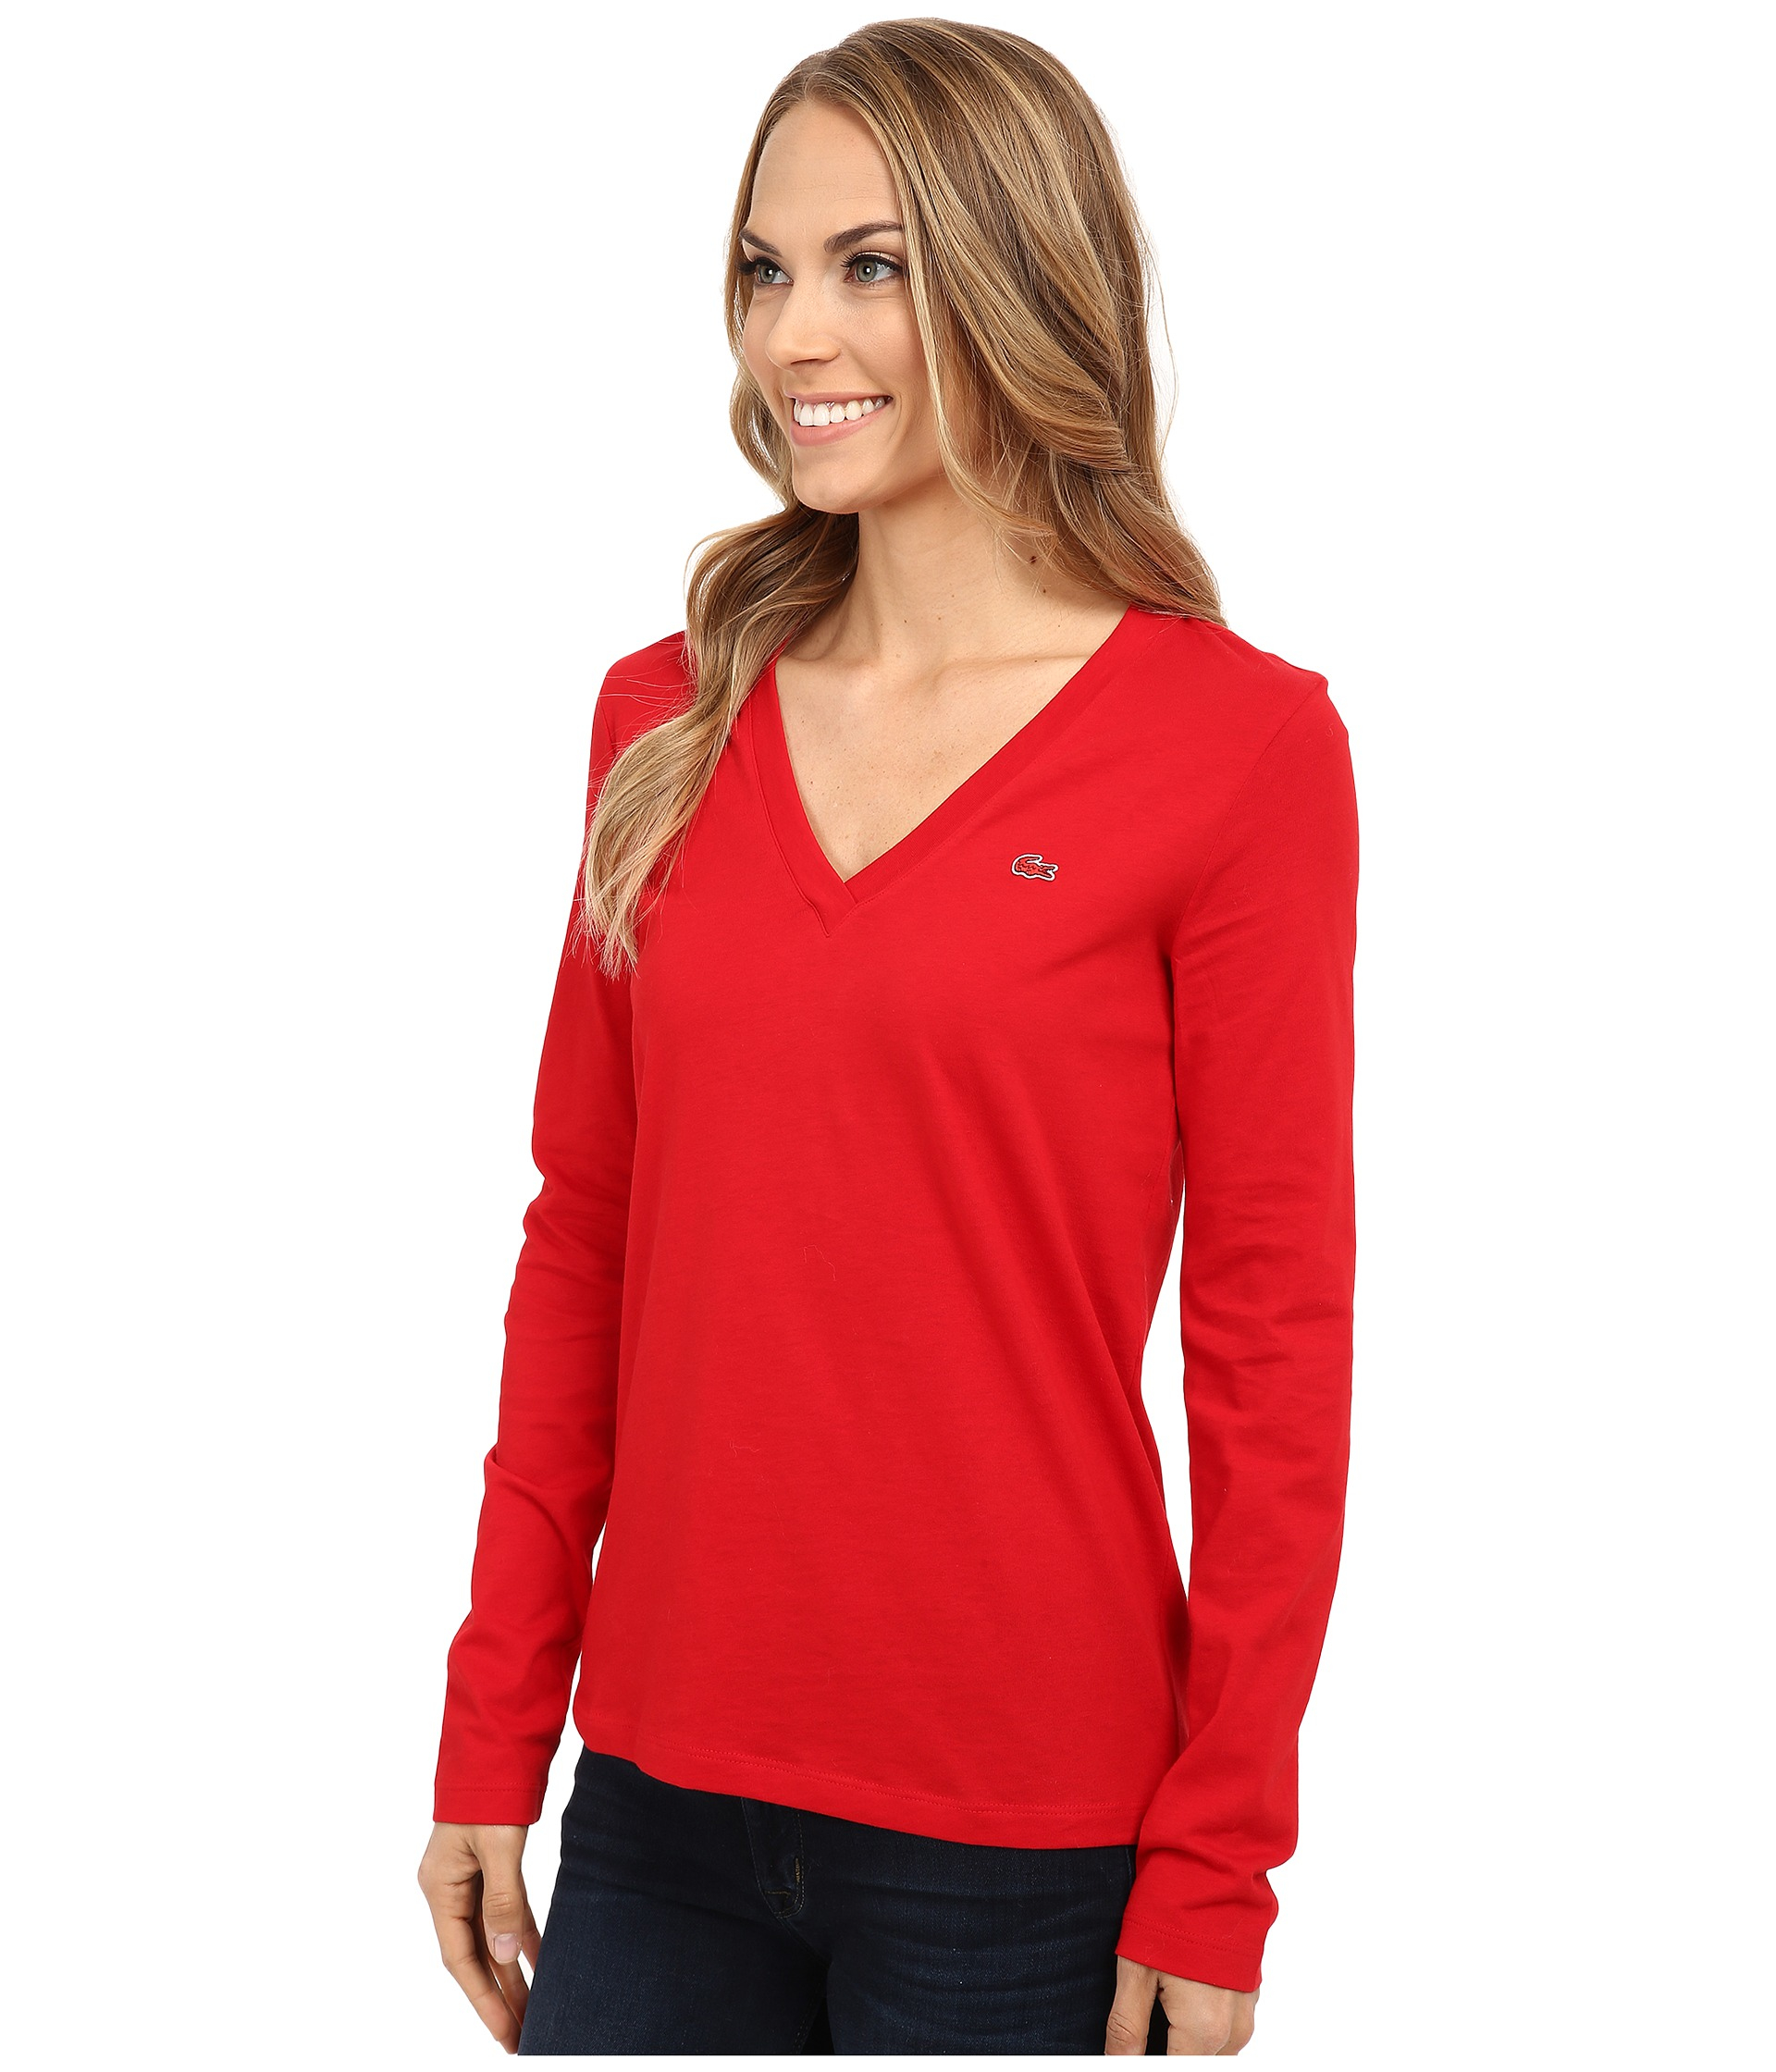 Lyst - Lacoste Long Sleeve Cotton Jersey V-neck Tee Shirt in Red d37e98d14